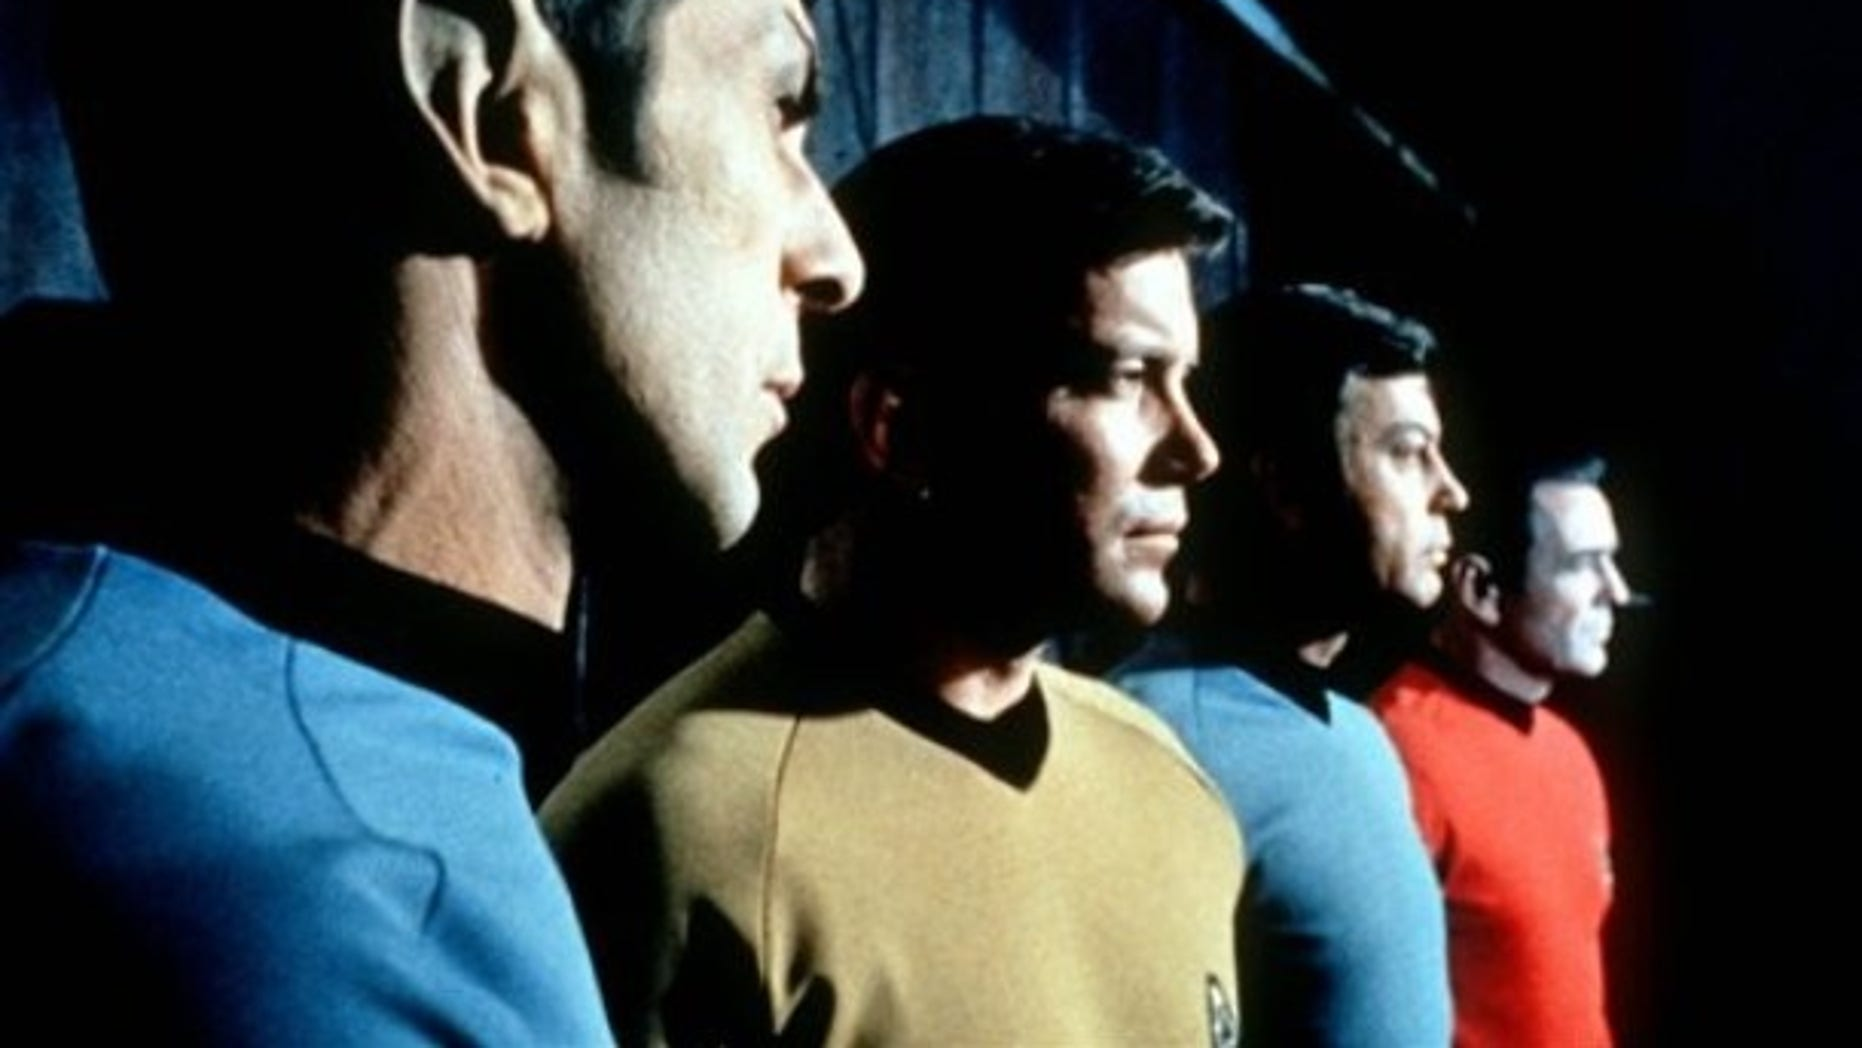 """FILE- This undated file photo shows actors in the TV series """"Star Trek,"""" from left, Leonard Nimoy as Commander Spock, William Shatner as Captain Kirk, DeForest Kelley as Doctor McCoy and James Doohan as Commander Scott. (AP Photo/Paramount Television ,File) ** NO SALES **"""